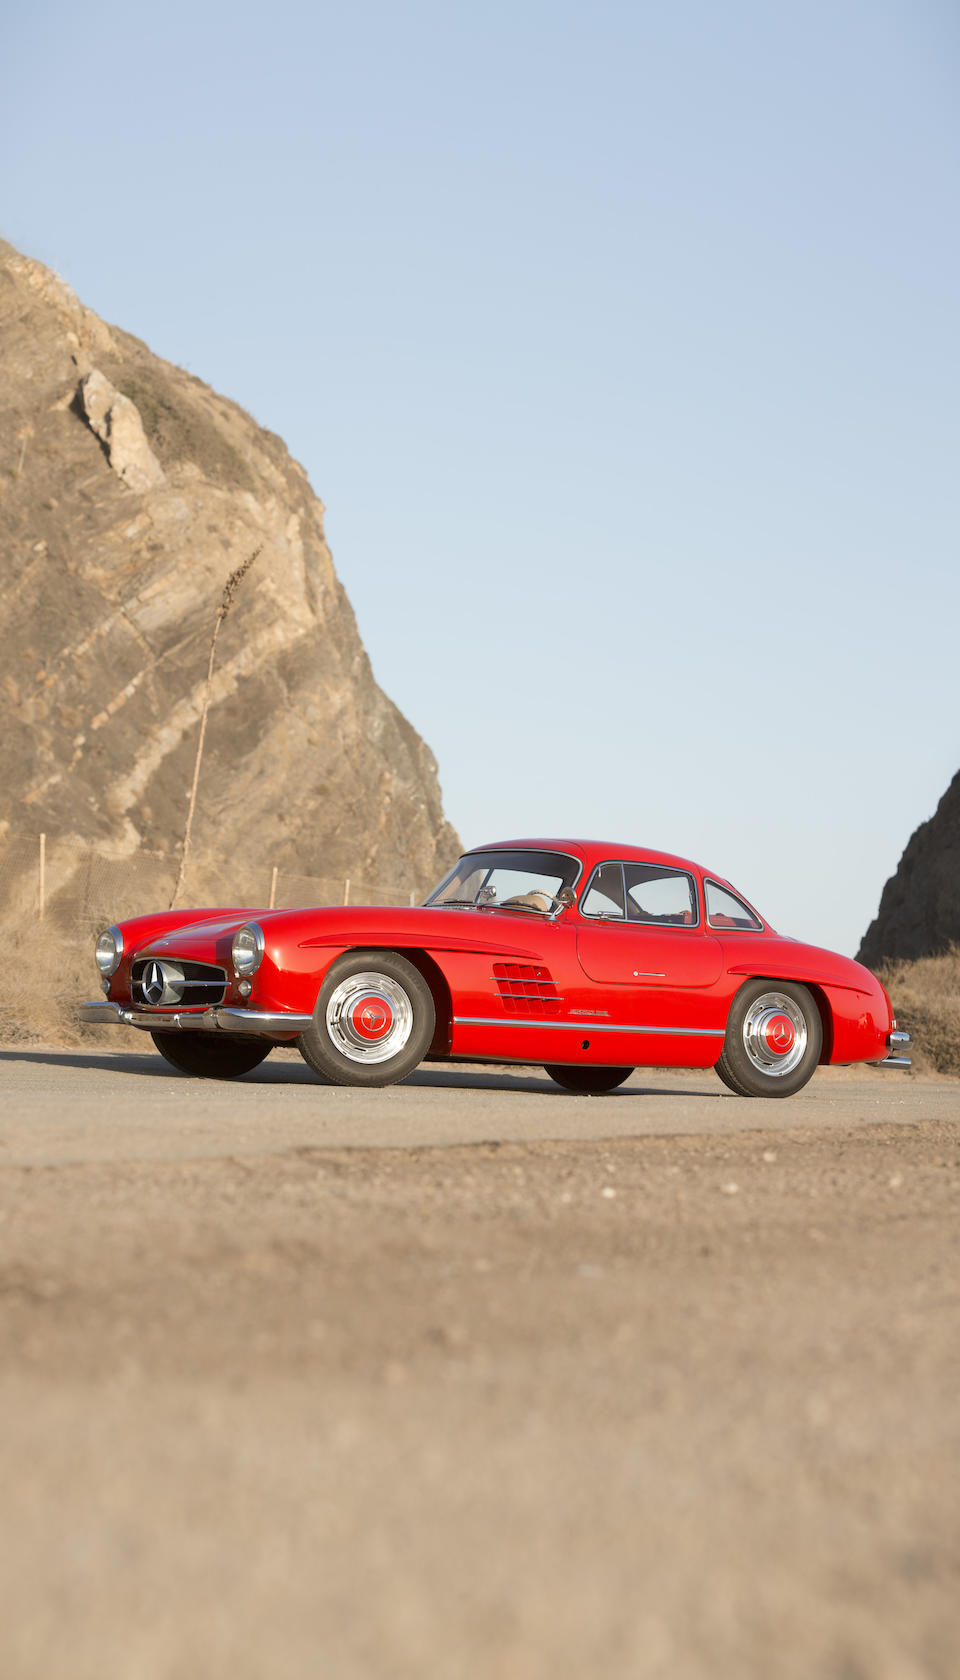 The ex-Rt Hon. Lord O'Neill – Prime Minister of Northern Ireland,1955 MERCEDES-BENZ  300SL GULLWING COUPE  Chassis no. 198.040.5500545 Engine no. 198.980.5500542